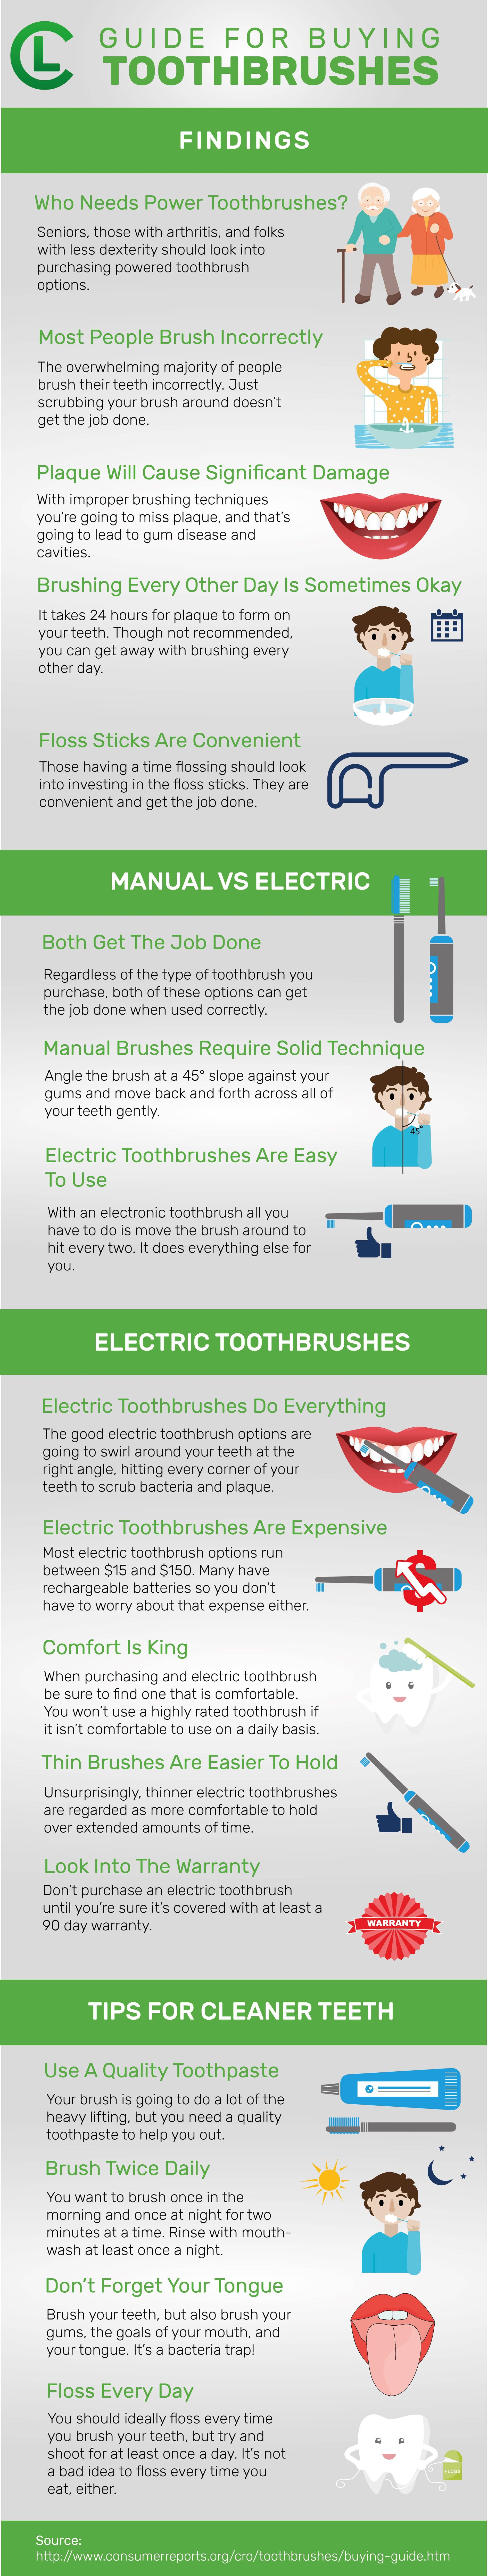 guide for buying toothbrushes infographic